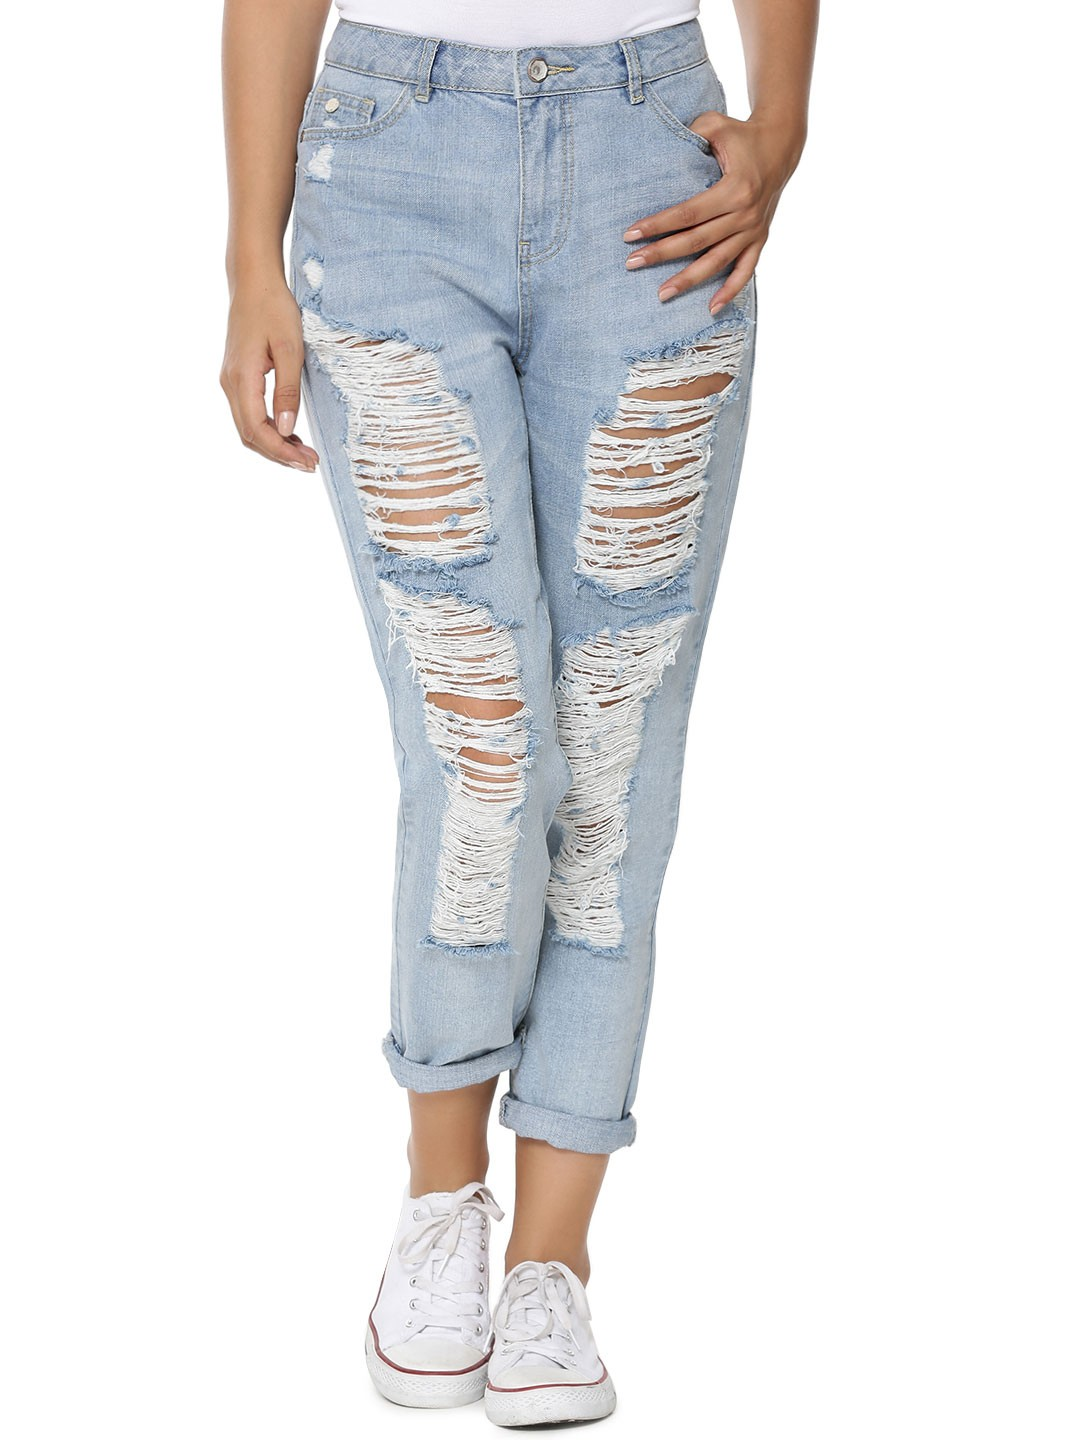 Buy ONLY Ripped Boyfriend Jeans For Women - Women's Blue Boyfriend ...